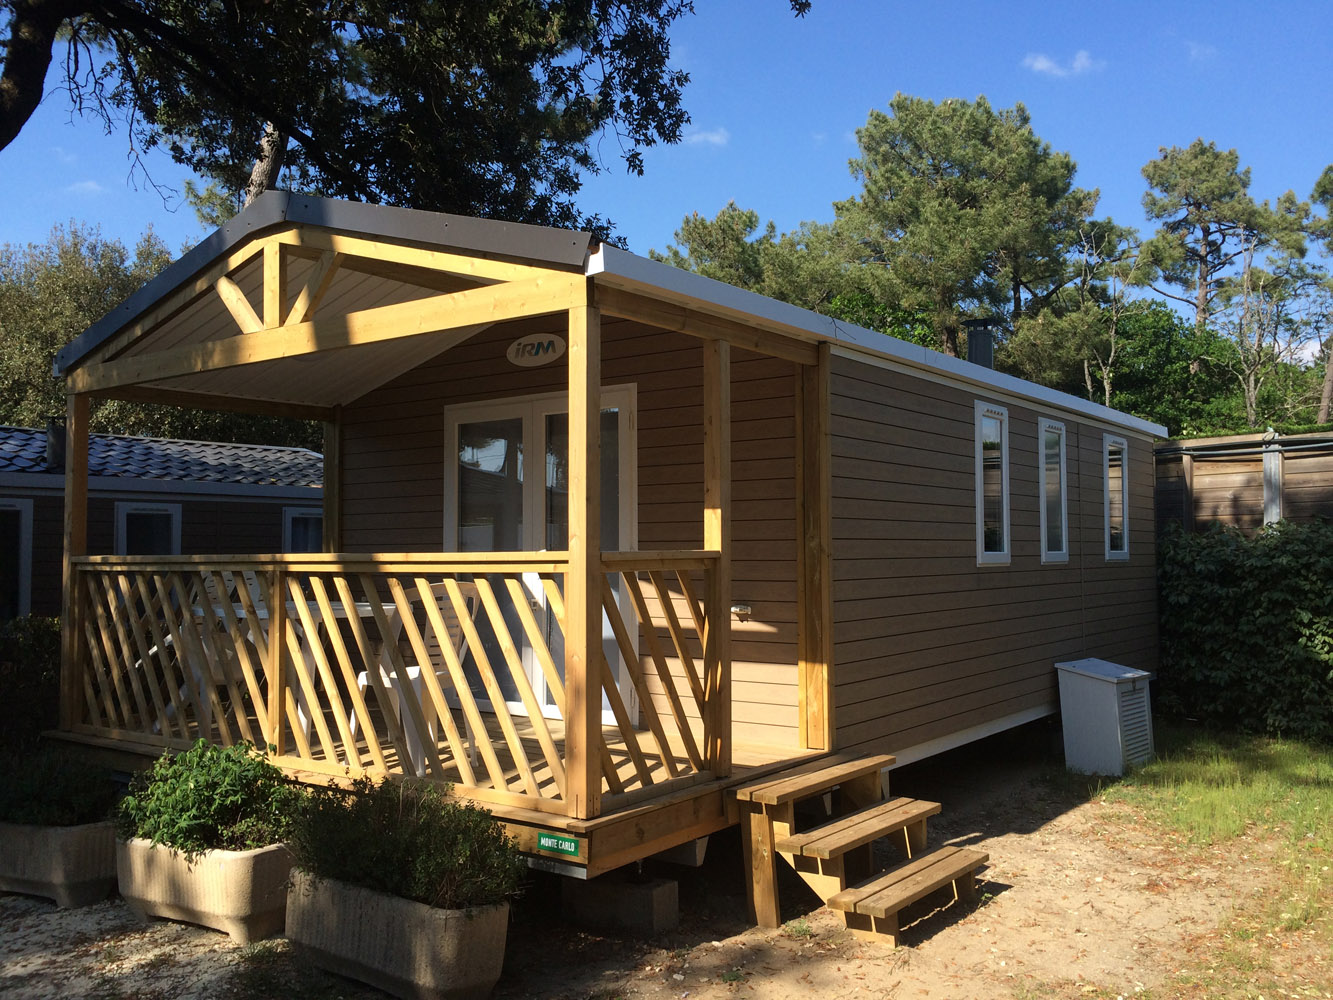 Mobile-home 2 bedrooms Loggia - 5-star campsite in Charente-Maritime